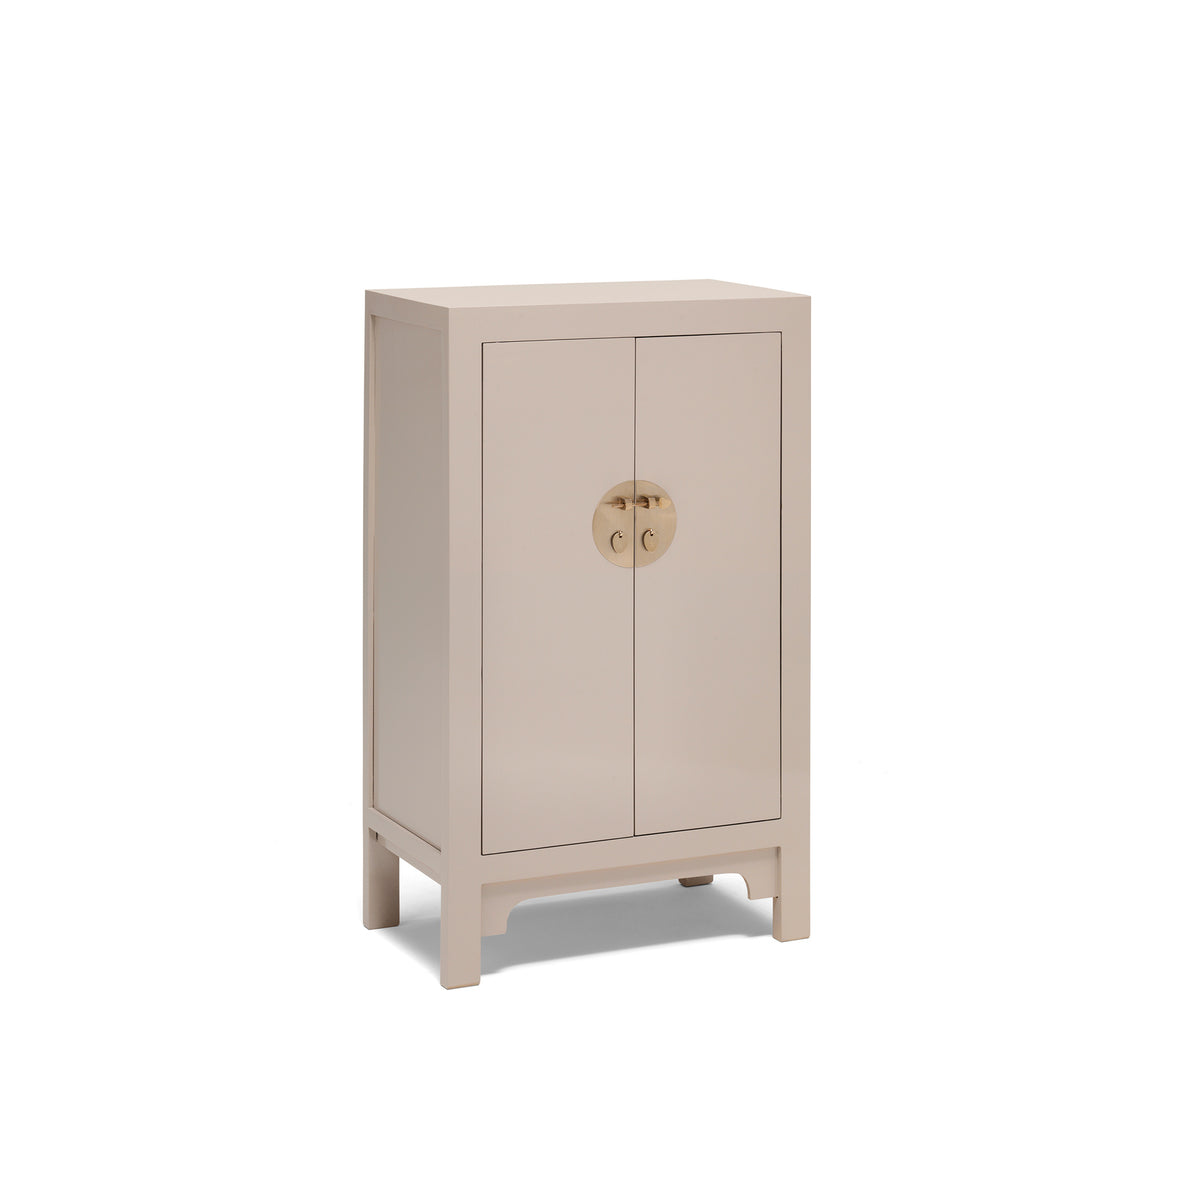 The Nine Schools Qing Oyster Grey Medium Cabinet by Roseland Furniture